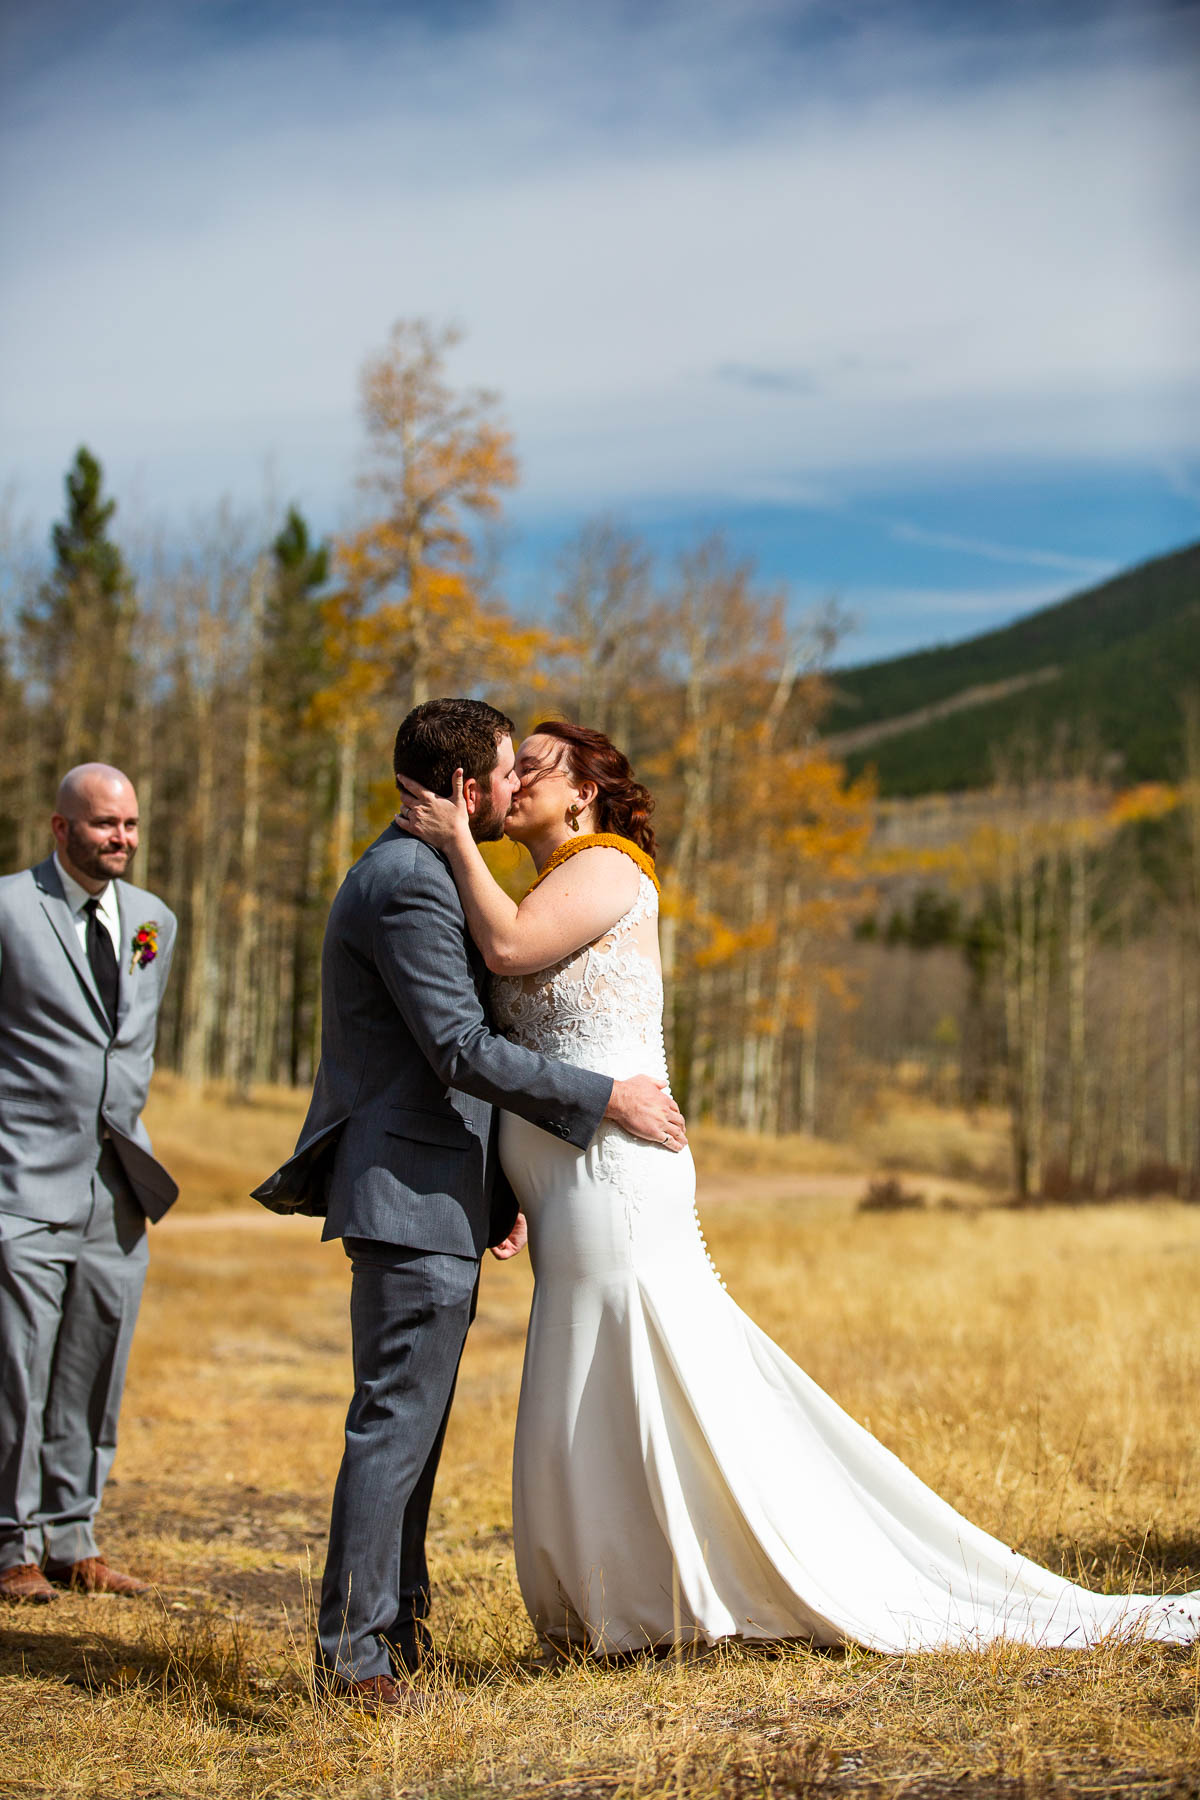 CO Photographer - Kenosha Pass Wedding Ceremony | The couple shares their first kiss as husband and wife